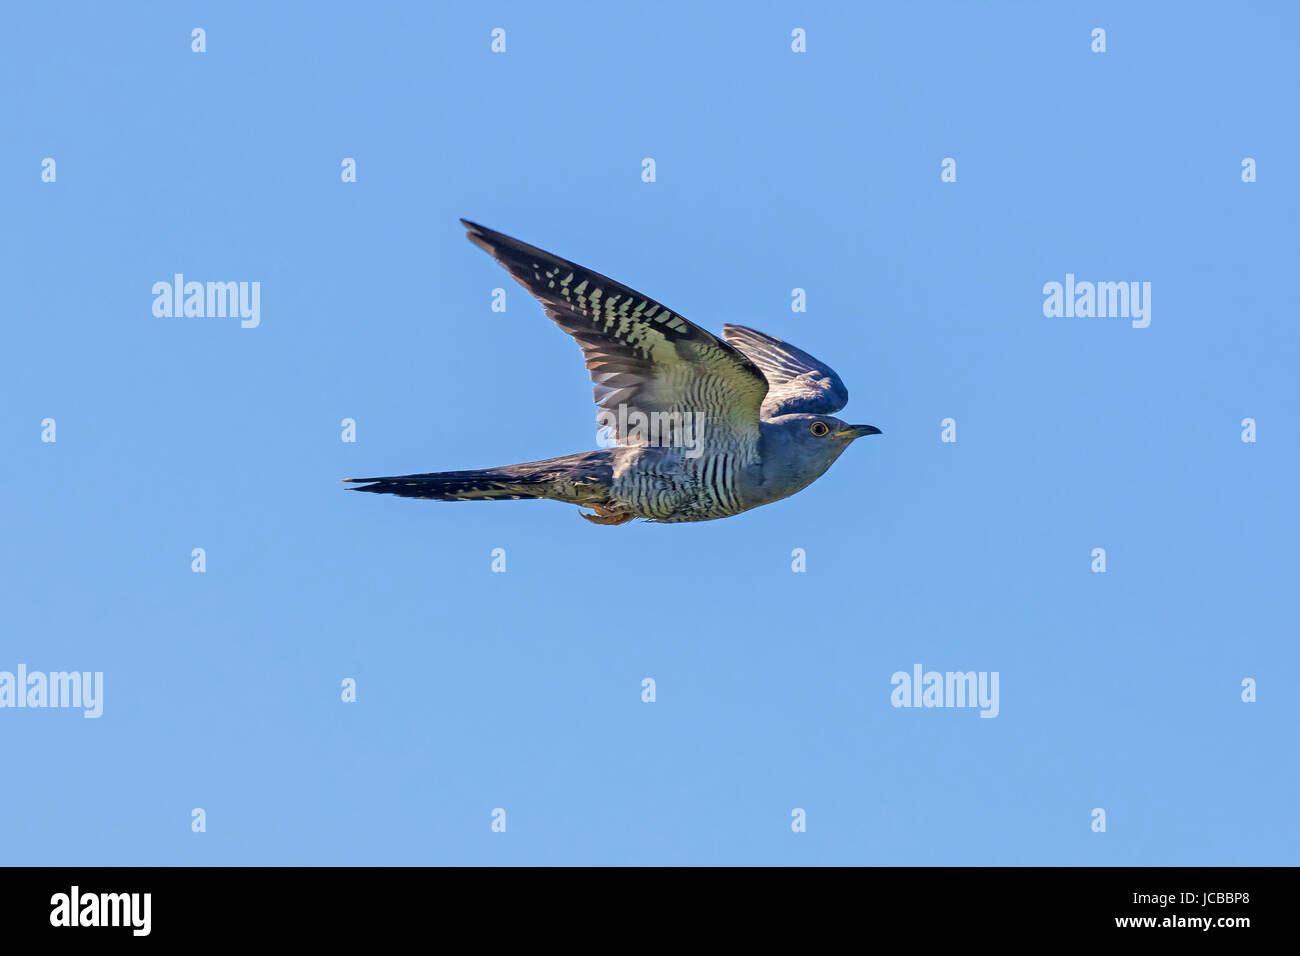 Common cuckoo (Cuculus canorus) male in flight against blue sky - Stock Image